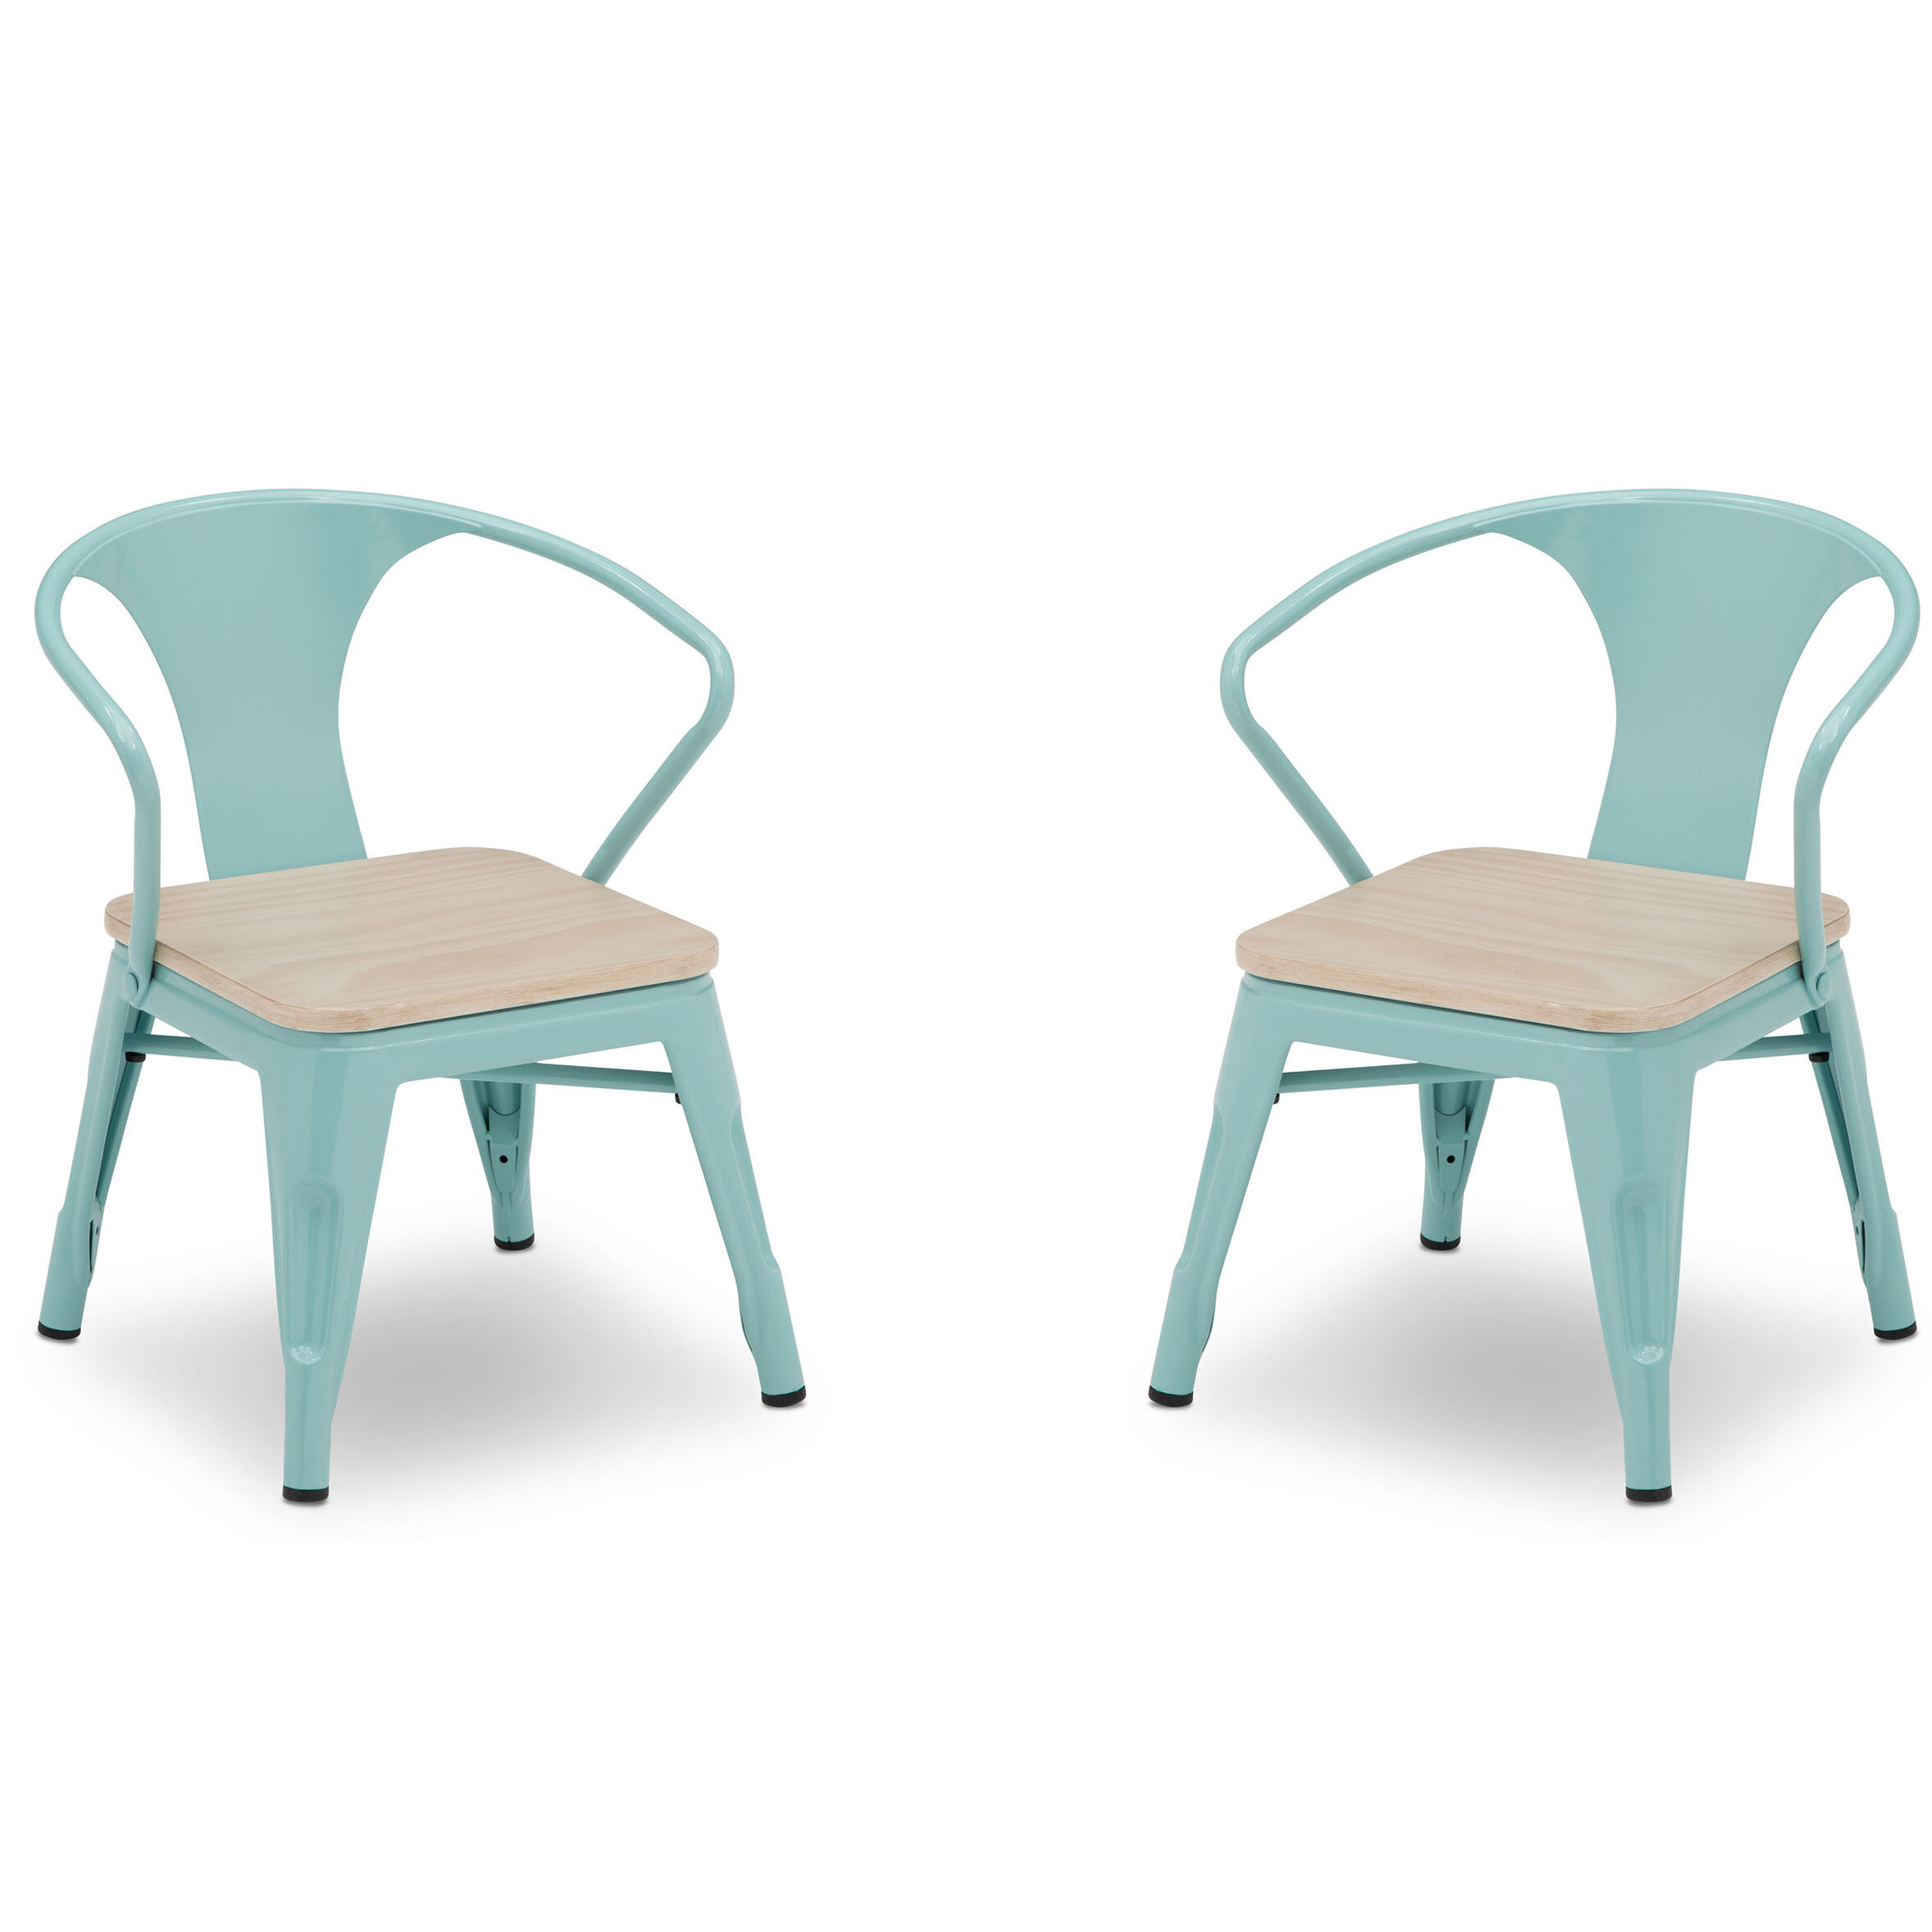 5 7 Years Harriet Bee Toddler Kids Chairs Seating You Ll Love In 2021 Wayfair